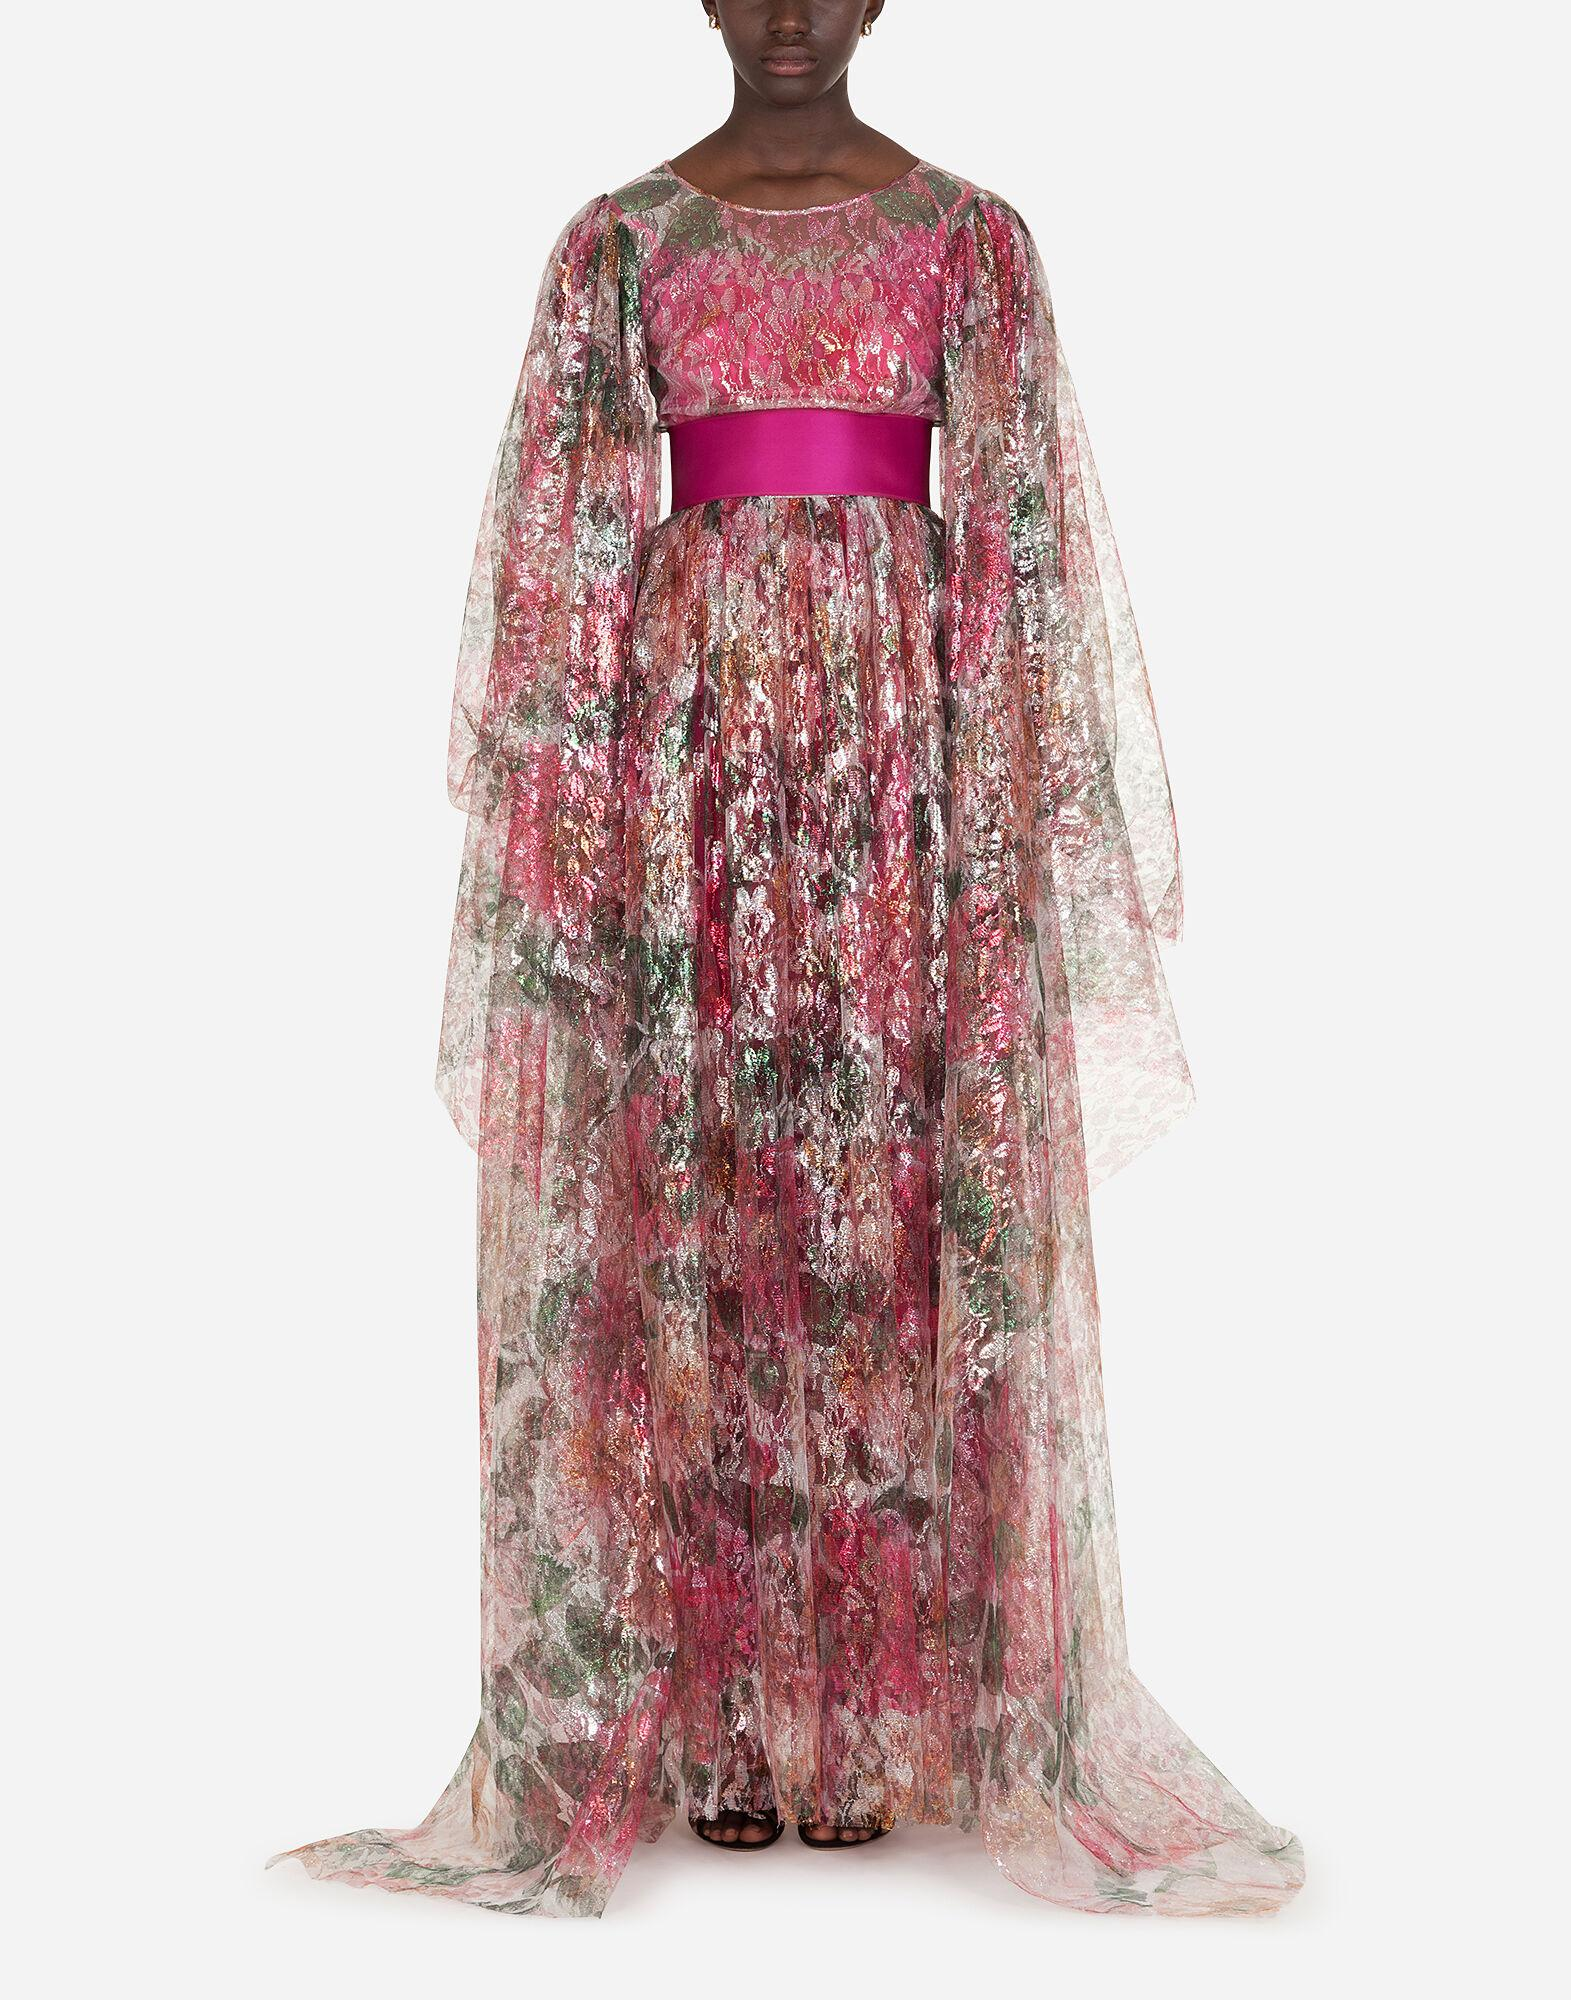 Long dress in lamé lace in camellia print